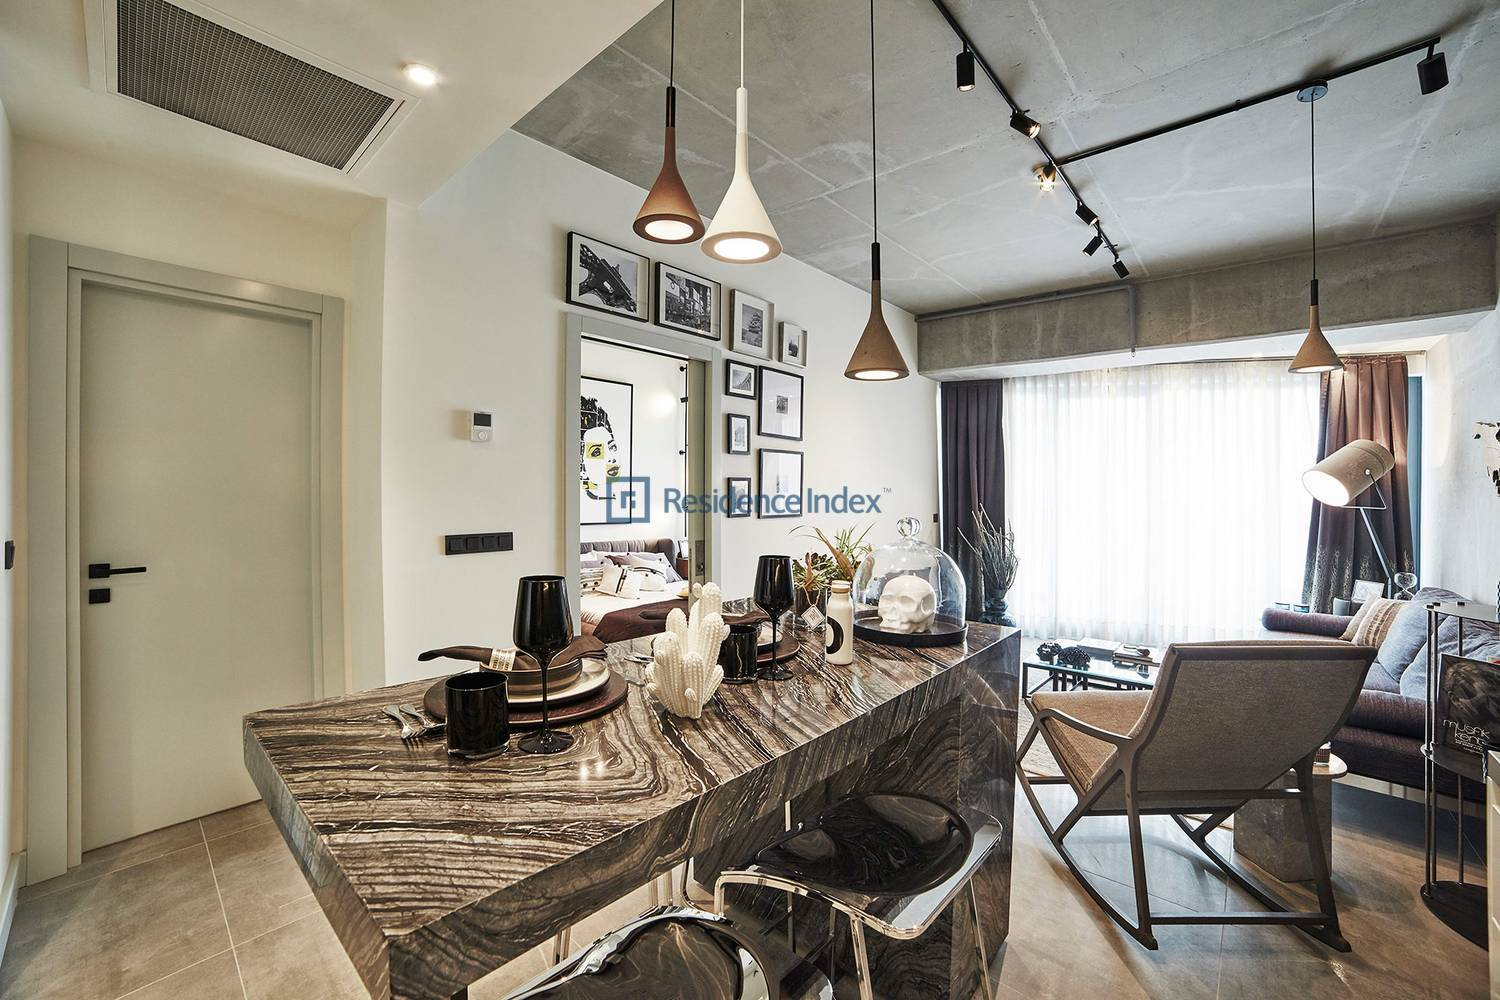 1 + 1 Apartment with View for Sale